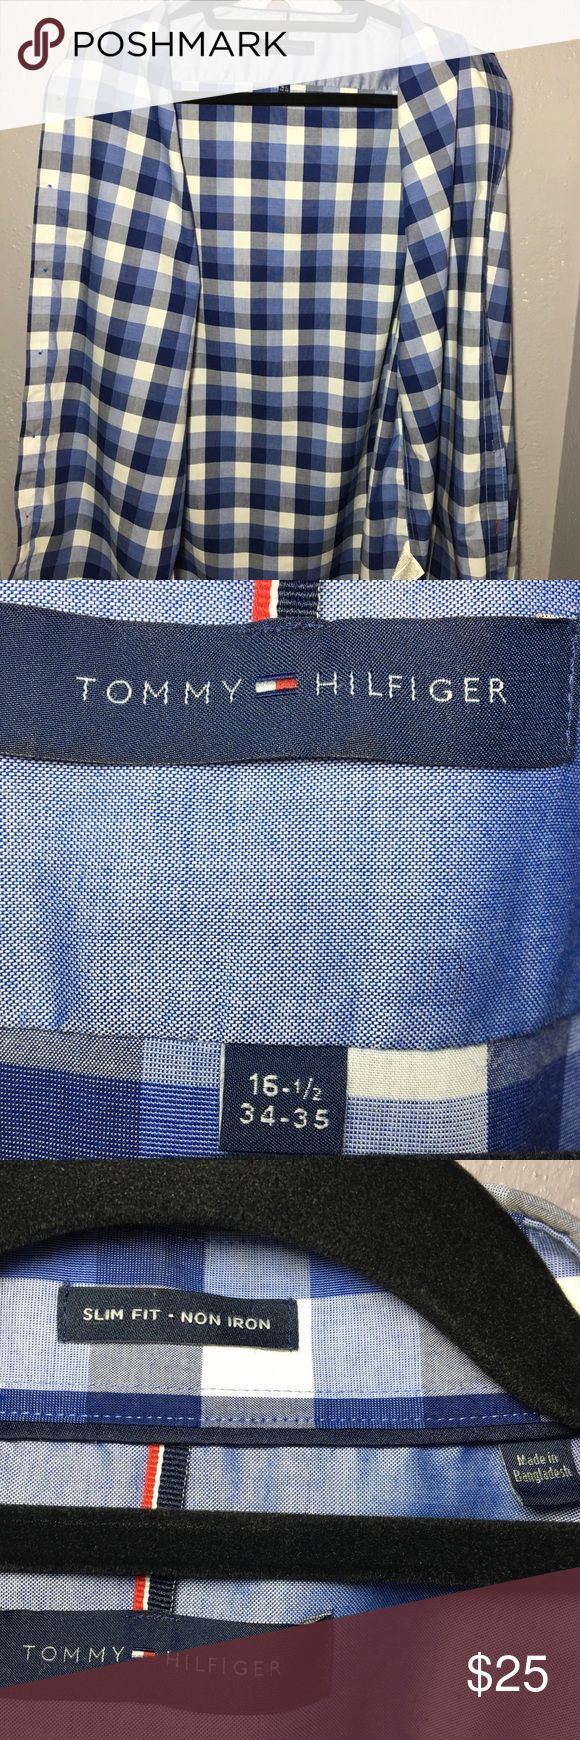 Tommy Hilfiger Slim Fit Non-Iron Shirt Sexy looking shirt at an unbeatable price, go out and break some necks 😉 Tommy Hilfiger Shirts Dress Shirts